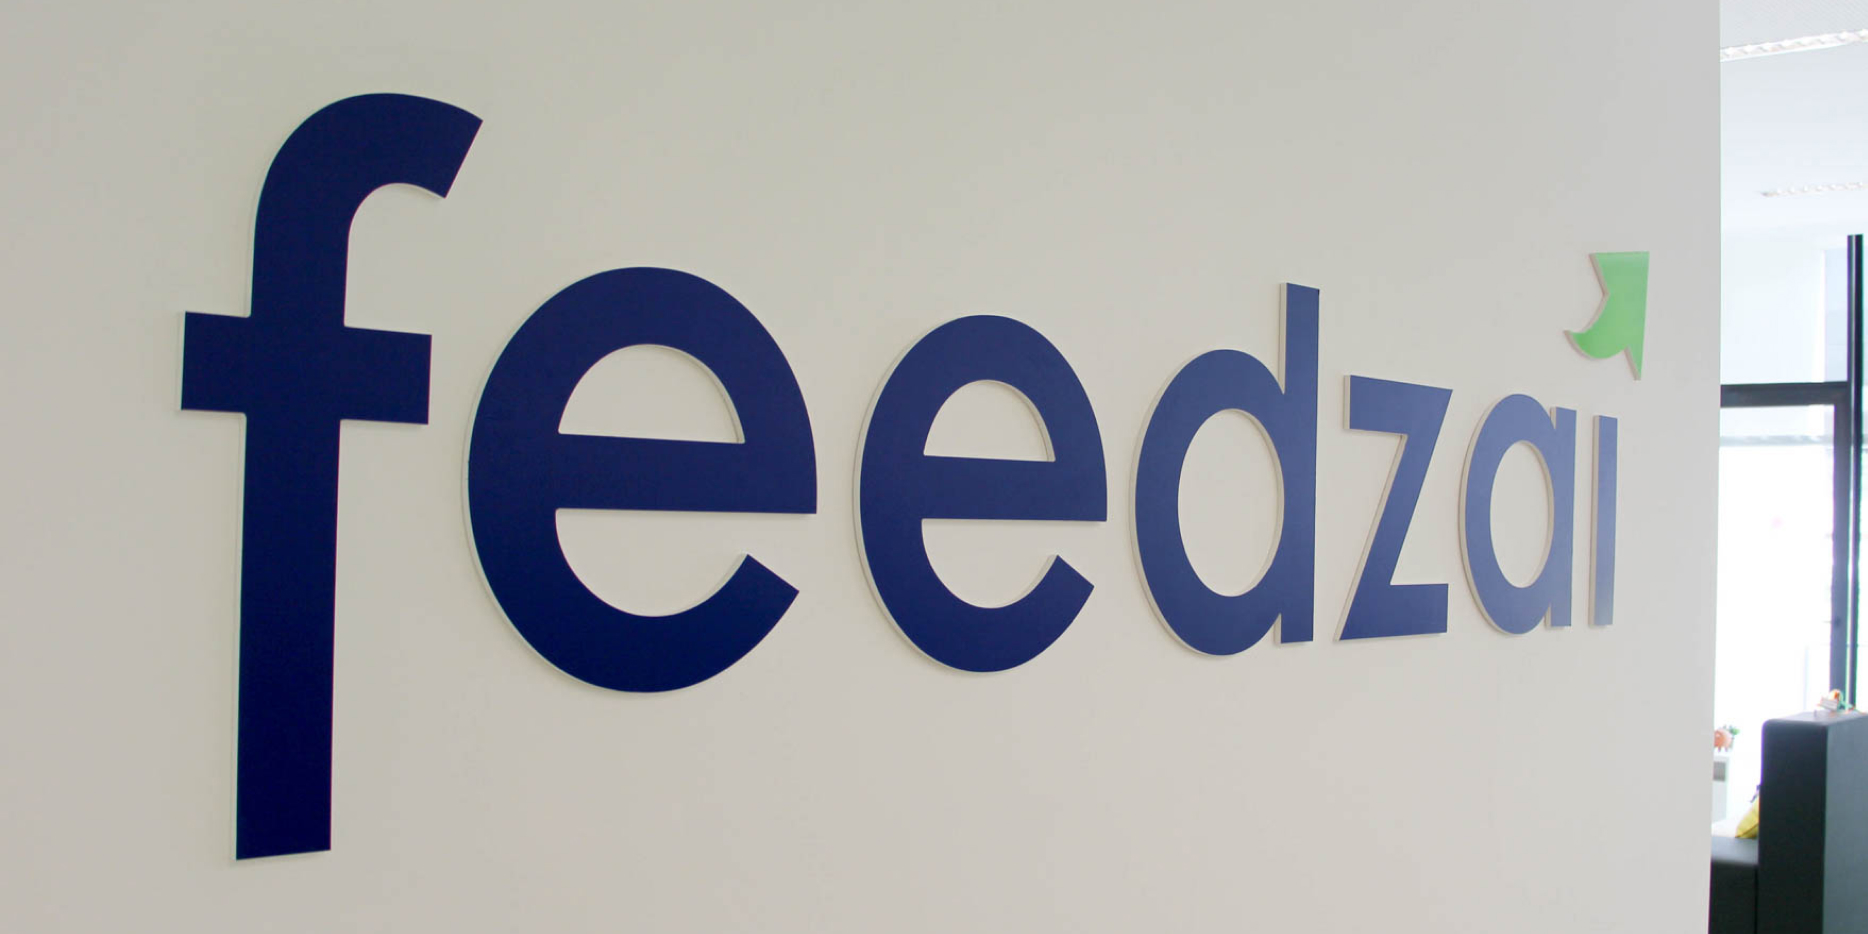 photo of Feedzai's logo on a wall